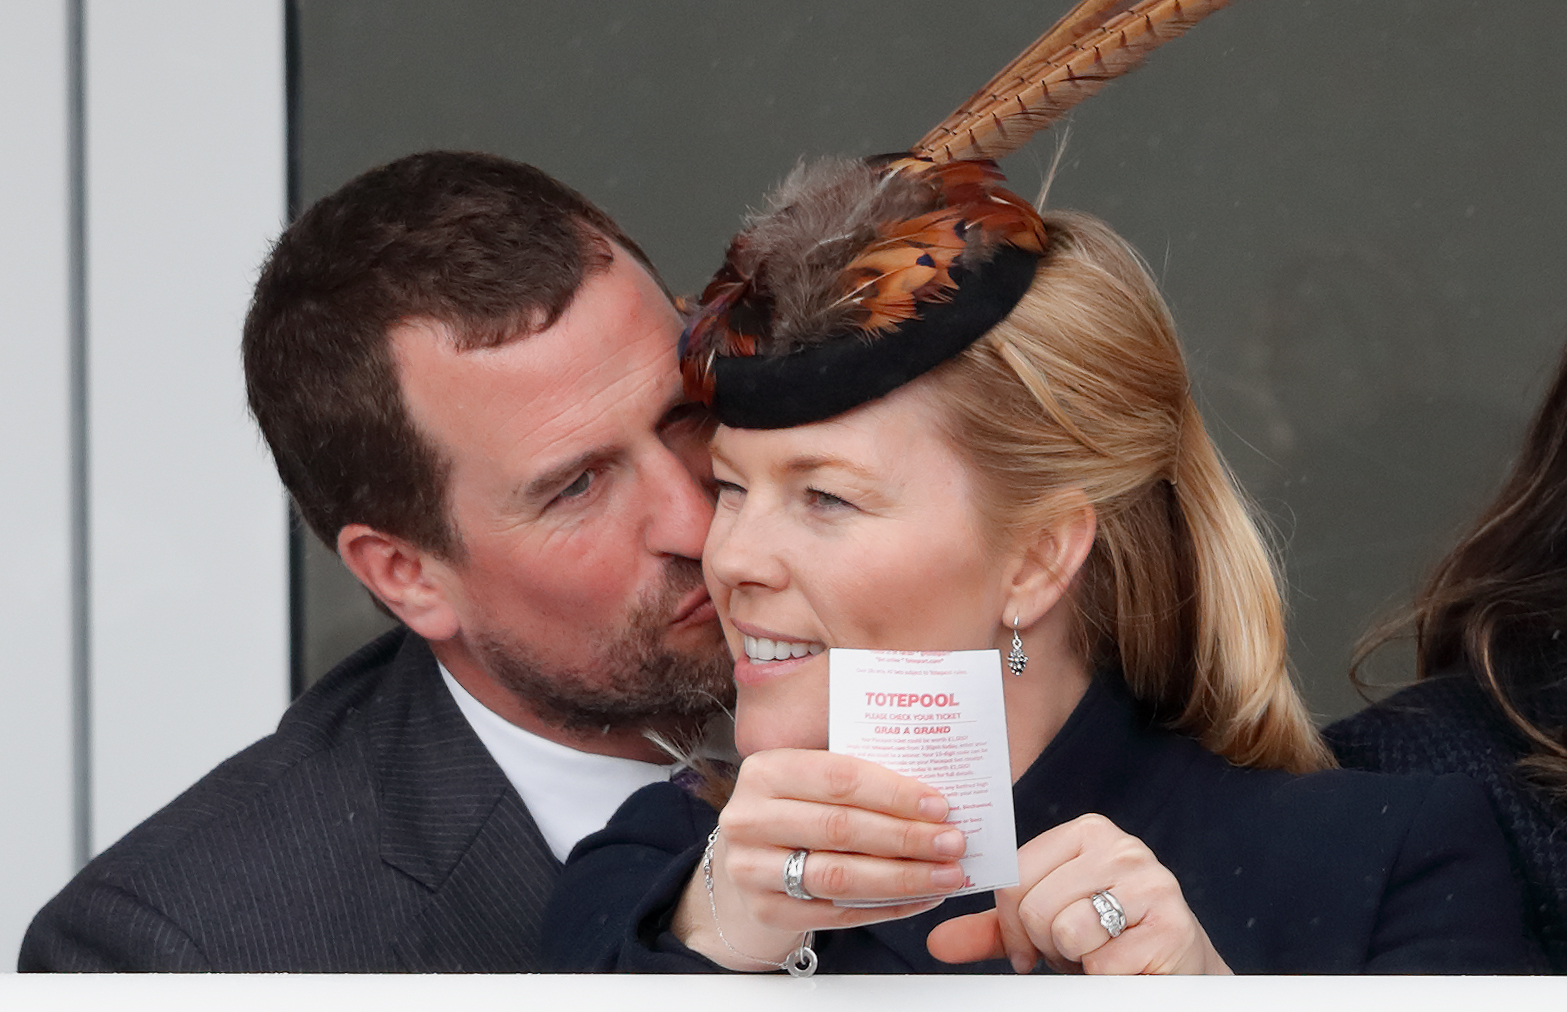 Peter Phillips kisses wife Autumn Phillips as they attend day 4 'Gold Cup Day' of the Cheltenham Festival at Cheltenham Racecourse on March 16, 2018 in Cheltenham, England.